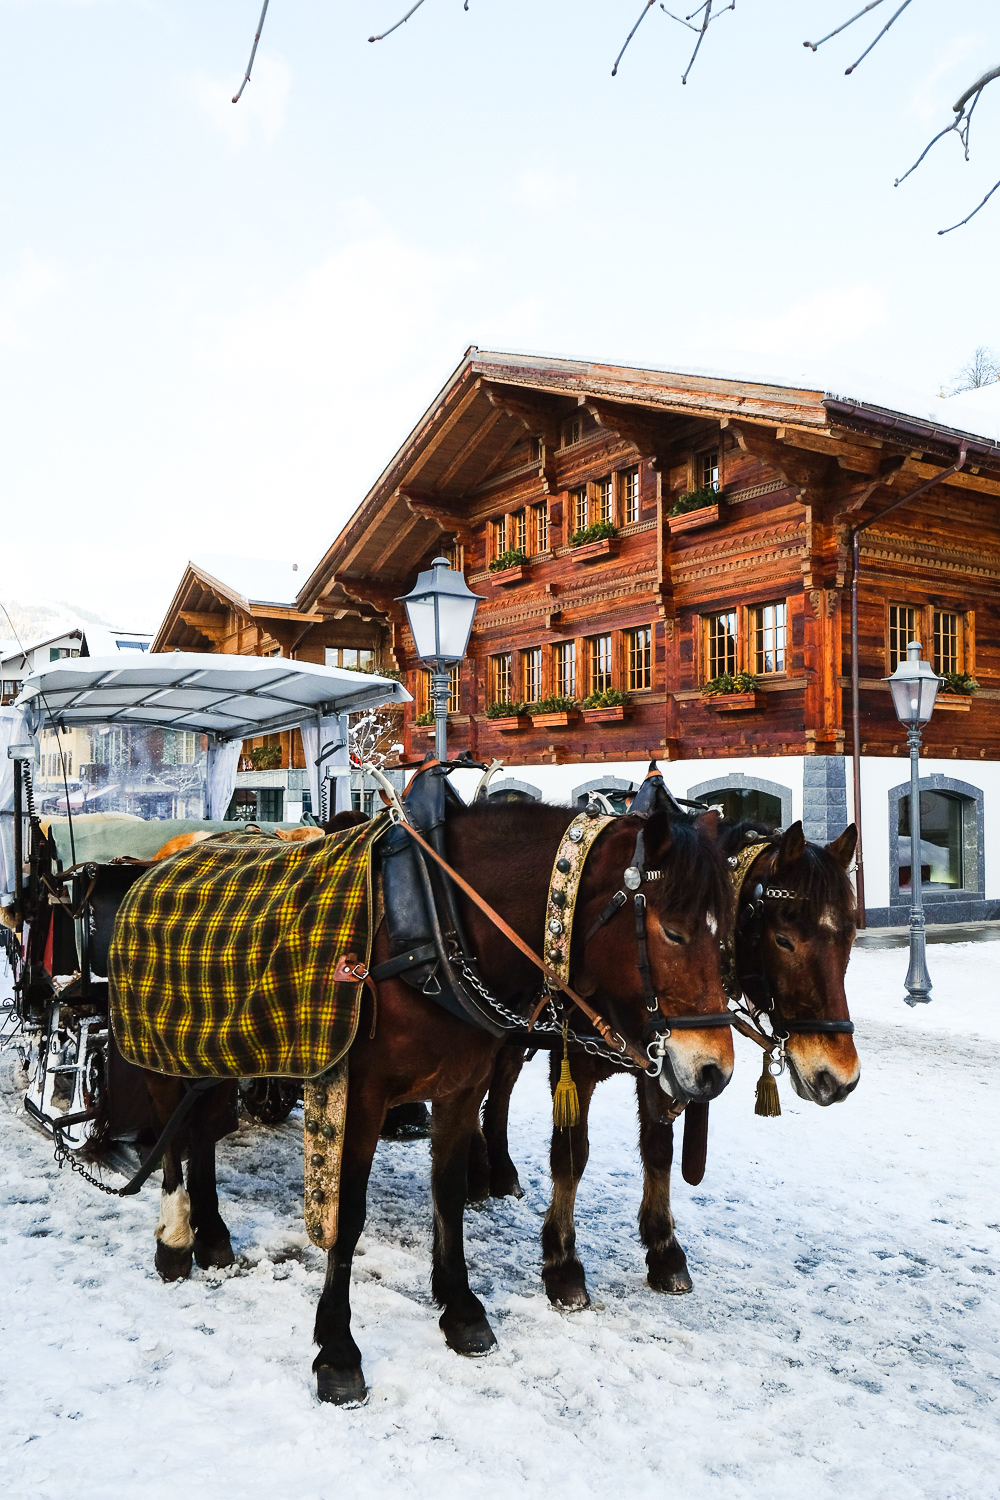 Horse-carriages in the charming town of Gstaad in south-western Switzerland is a popular holiday destination for ski lovers and for the International jet-set